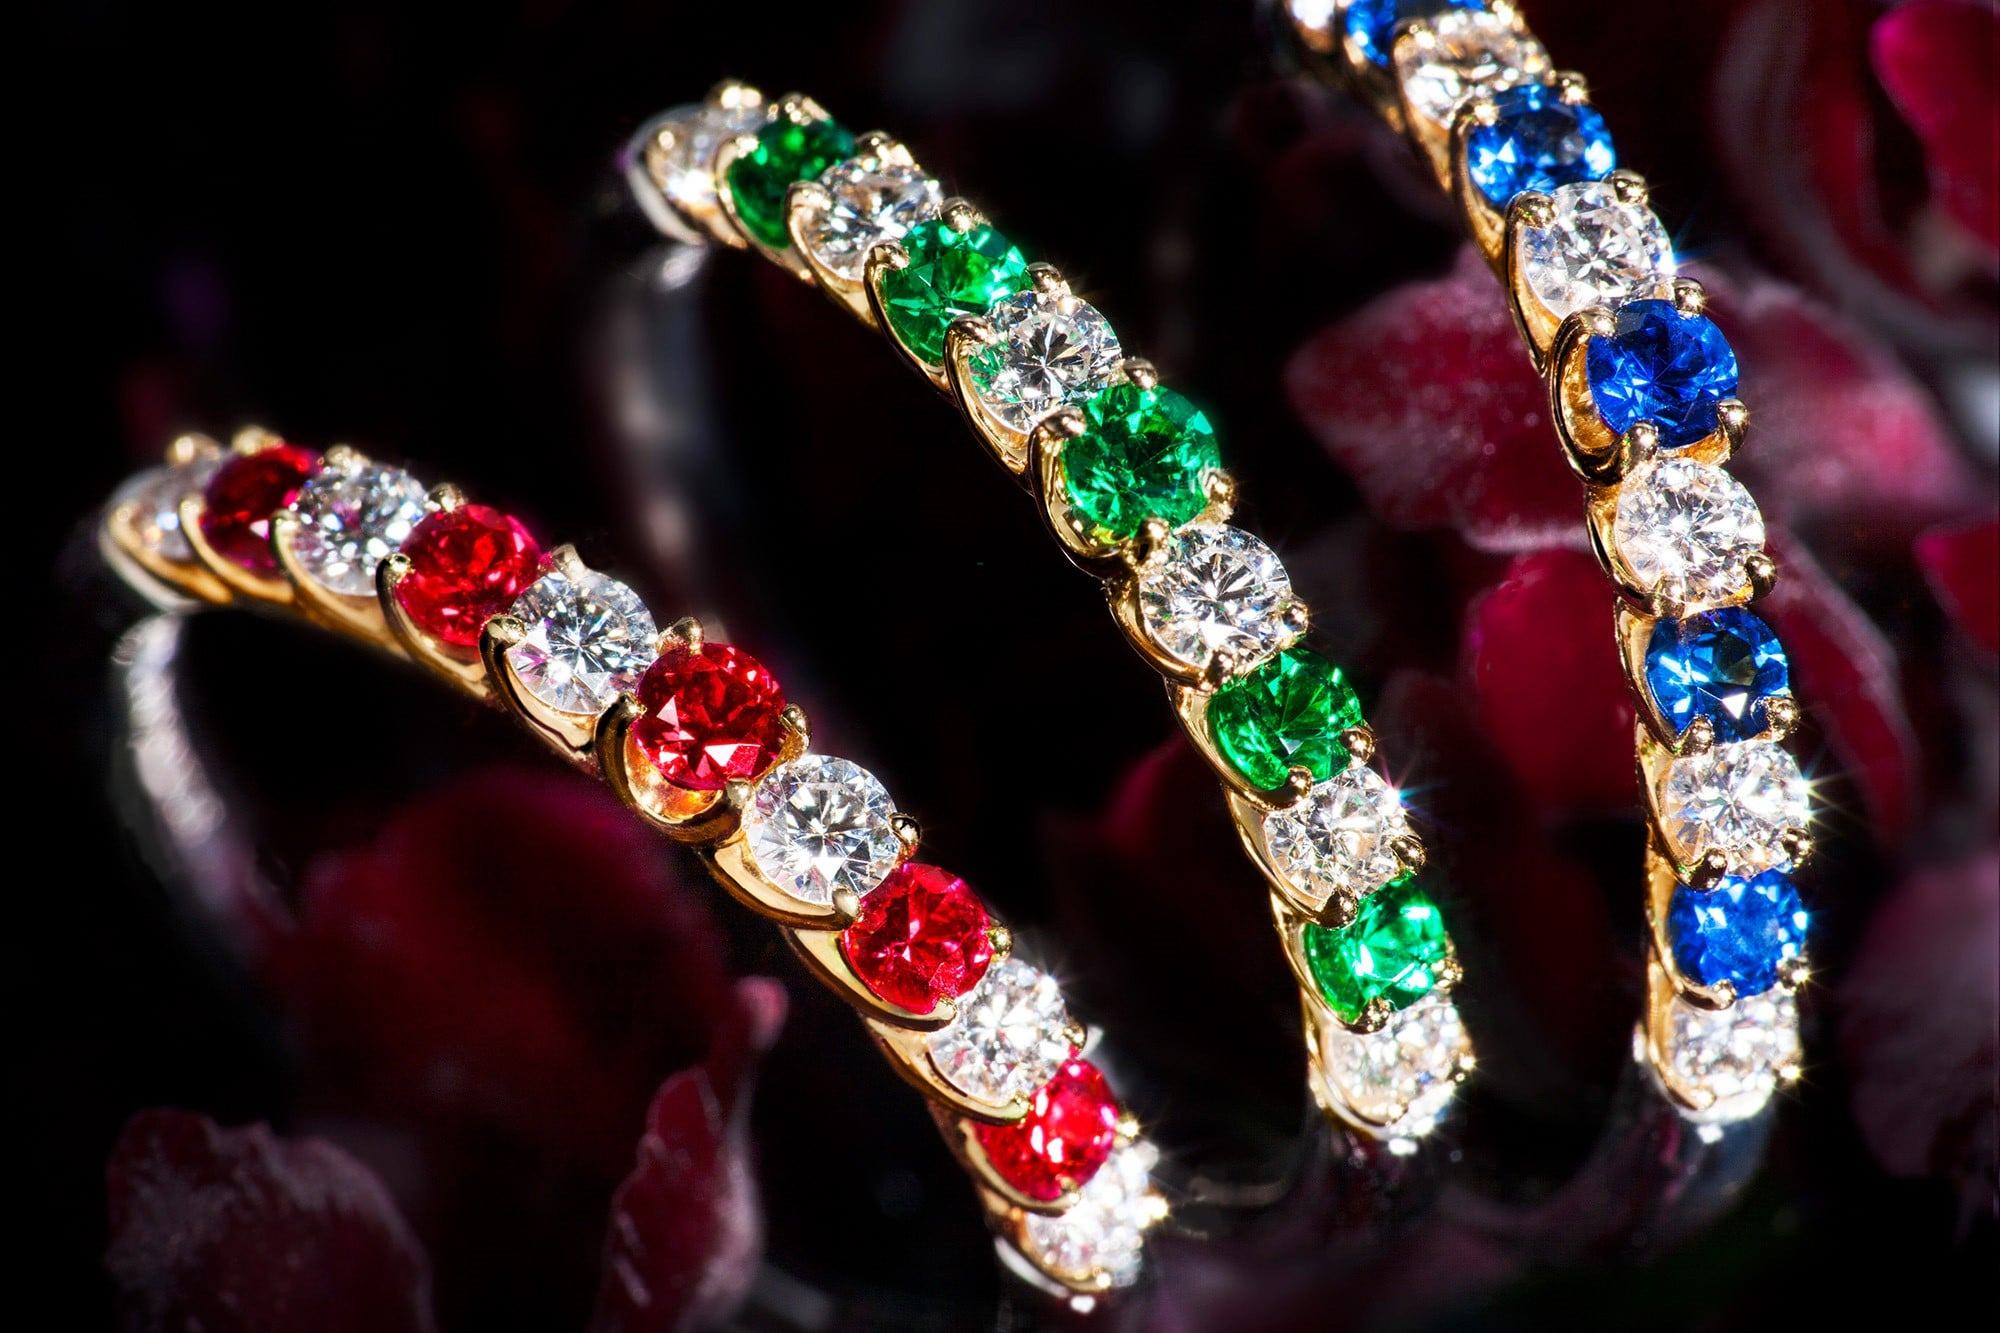 "The bundling uses a combination of diamonds and color stones. The diamonds, rubies, sapphires and unprocessed emerald used in the jewellery are carefully selected. All of the ""Anniversary Bundling"